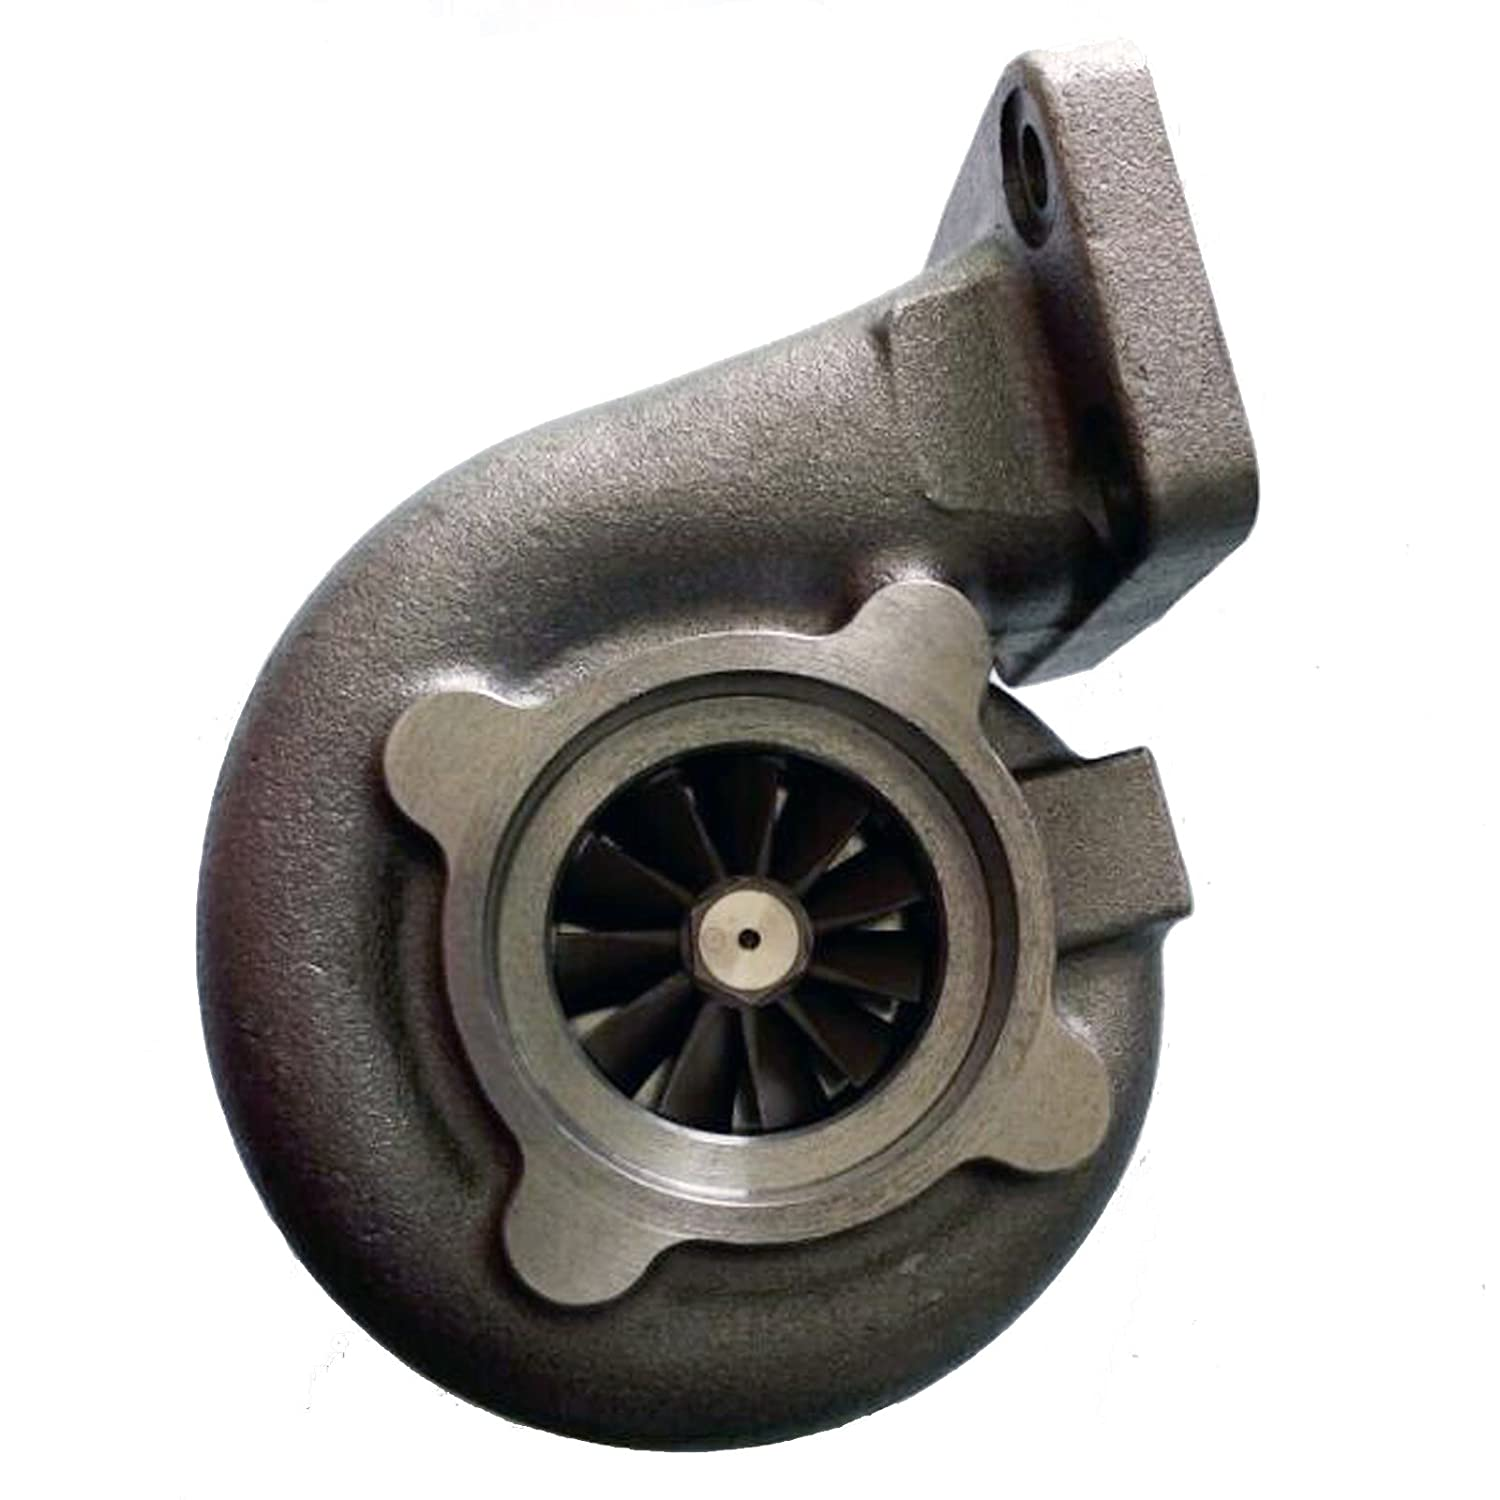 Holdwell Turbo TA3123 Turbocharger 2674A147 466674-5007S for Perkins Engine 1004.2T